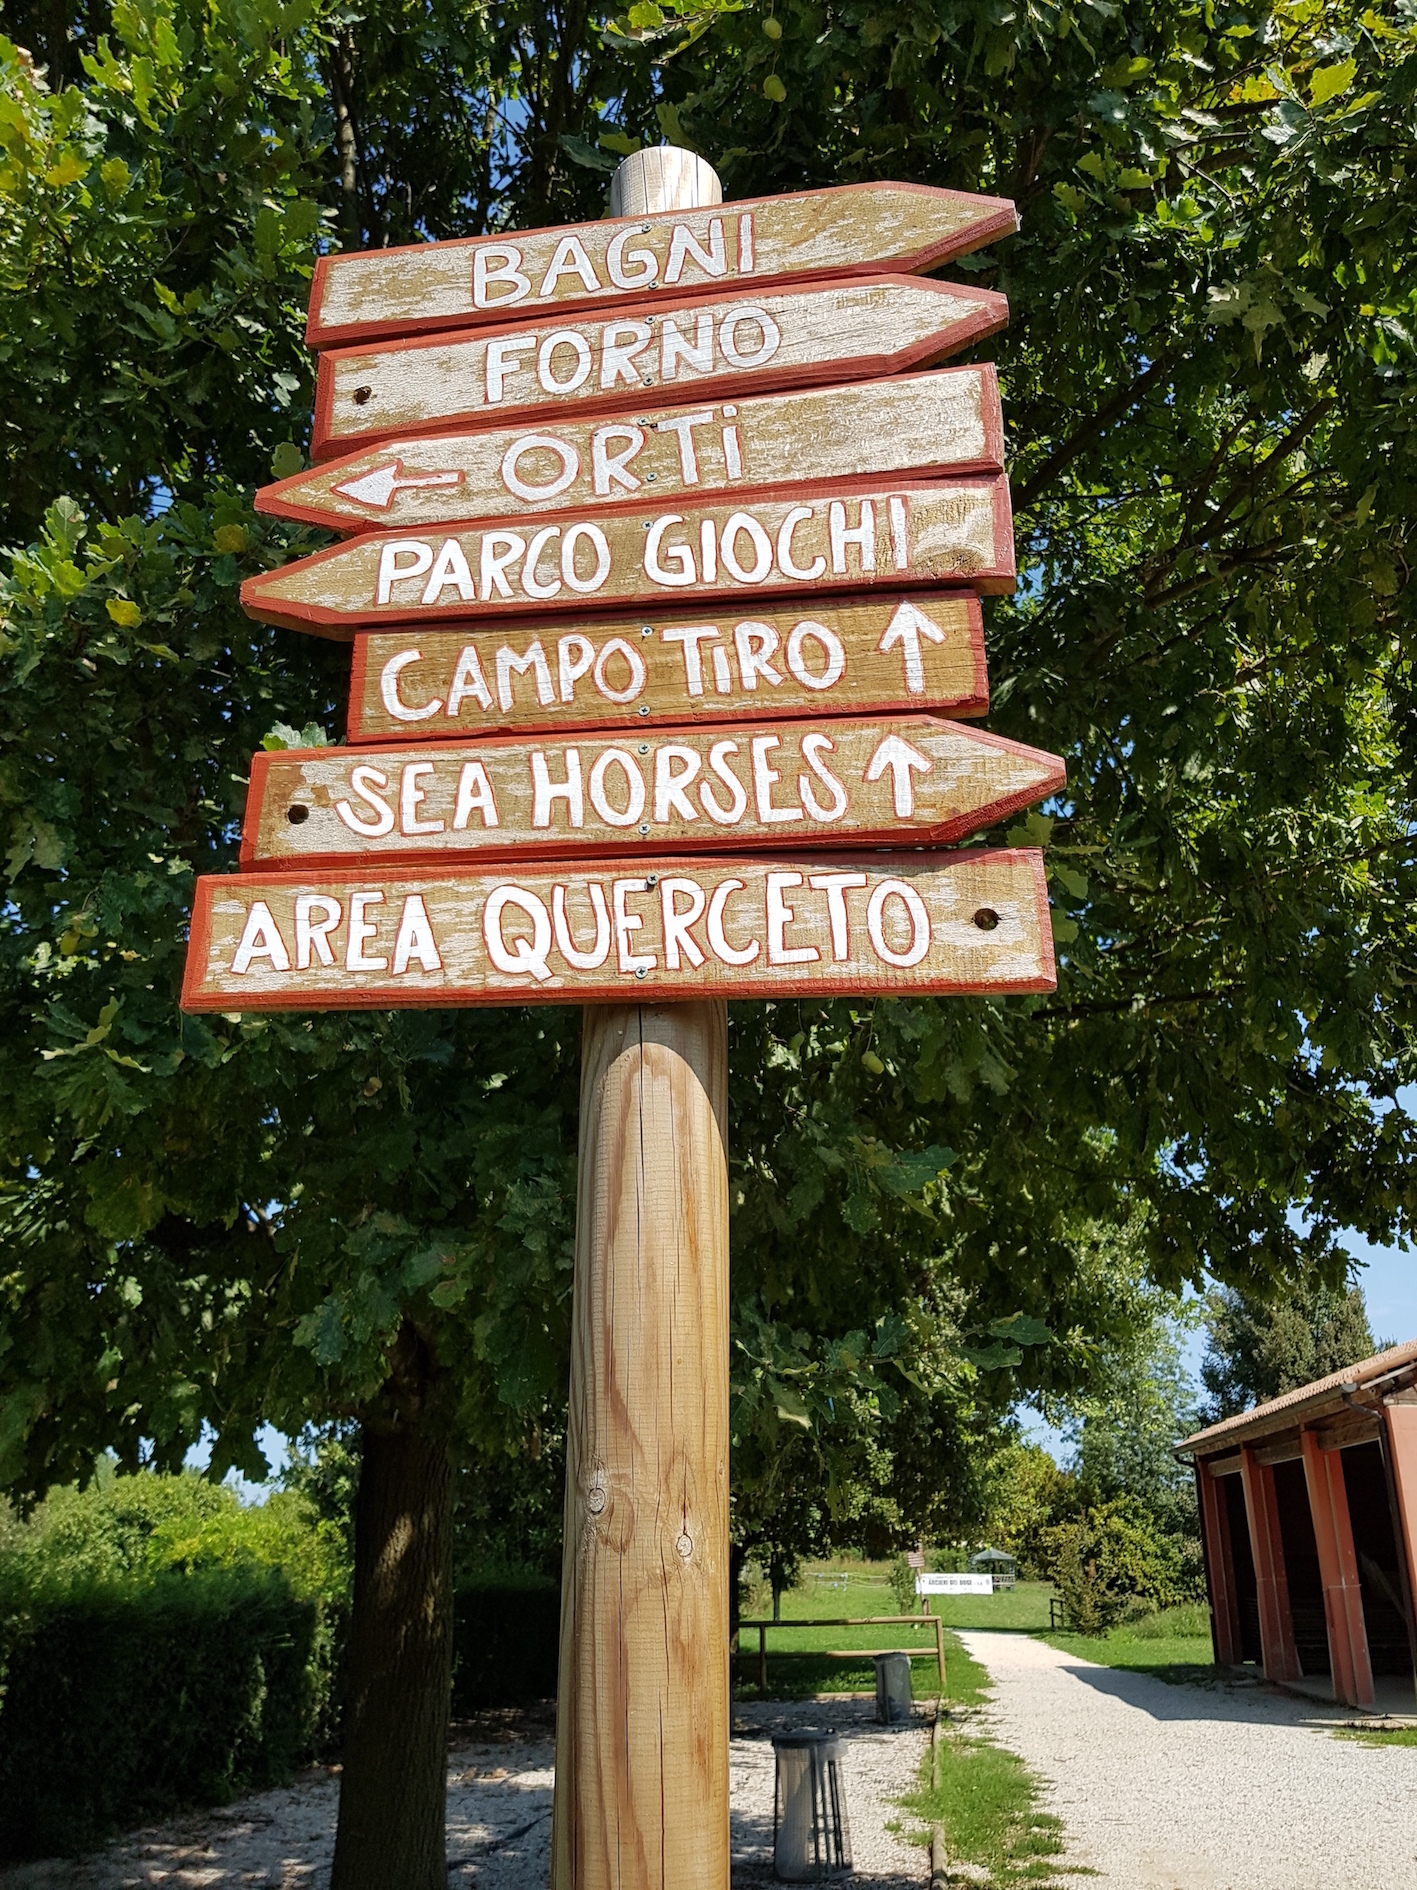 Road sing at the Ethnographic Park of Rubano, where many foreign inhabitants spend time during sunny days. It aims to facilitate the orientation, to reduce the risk of getting lost in the green area, to increase the security and to promote the park as a place of integration. However it is just in Italian.